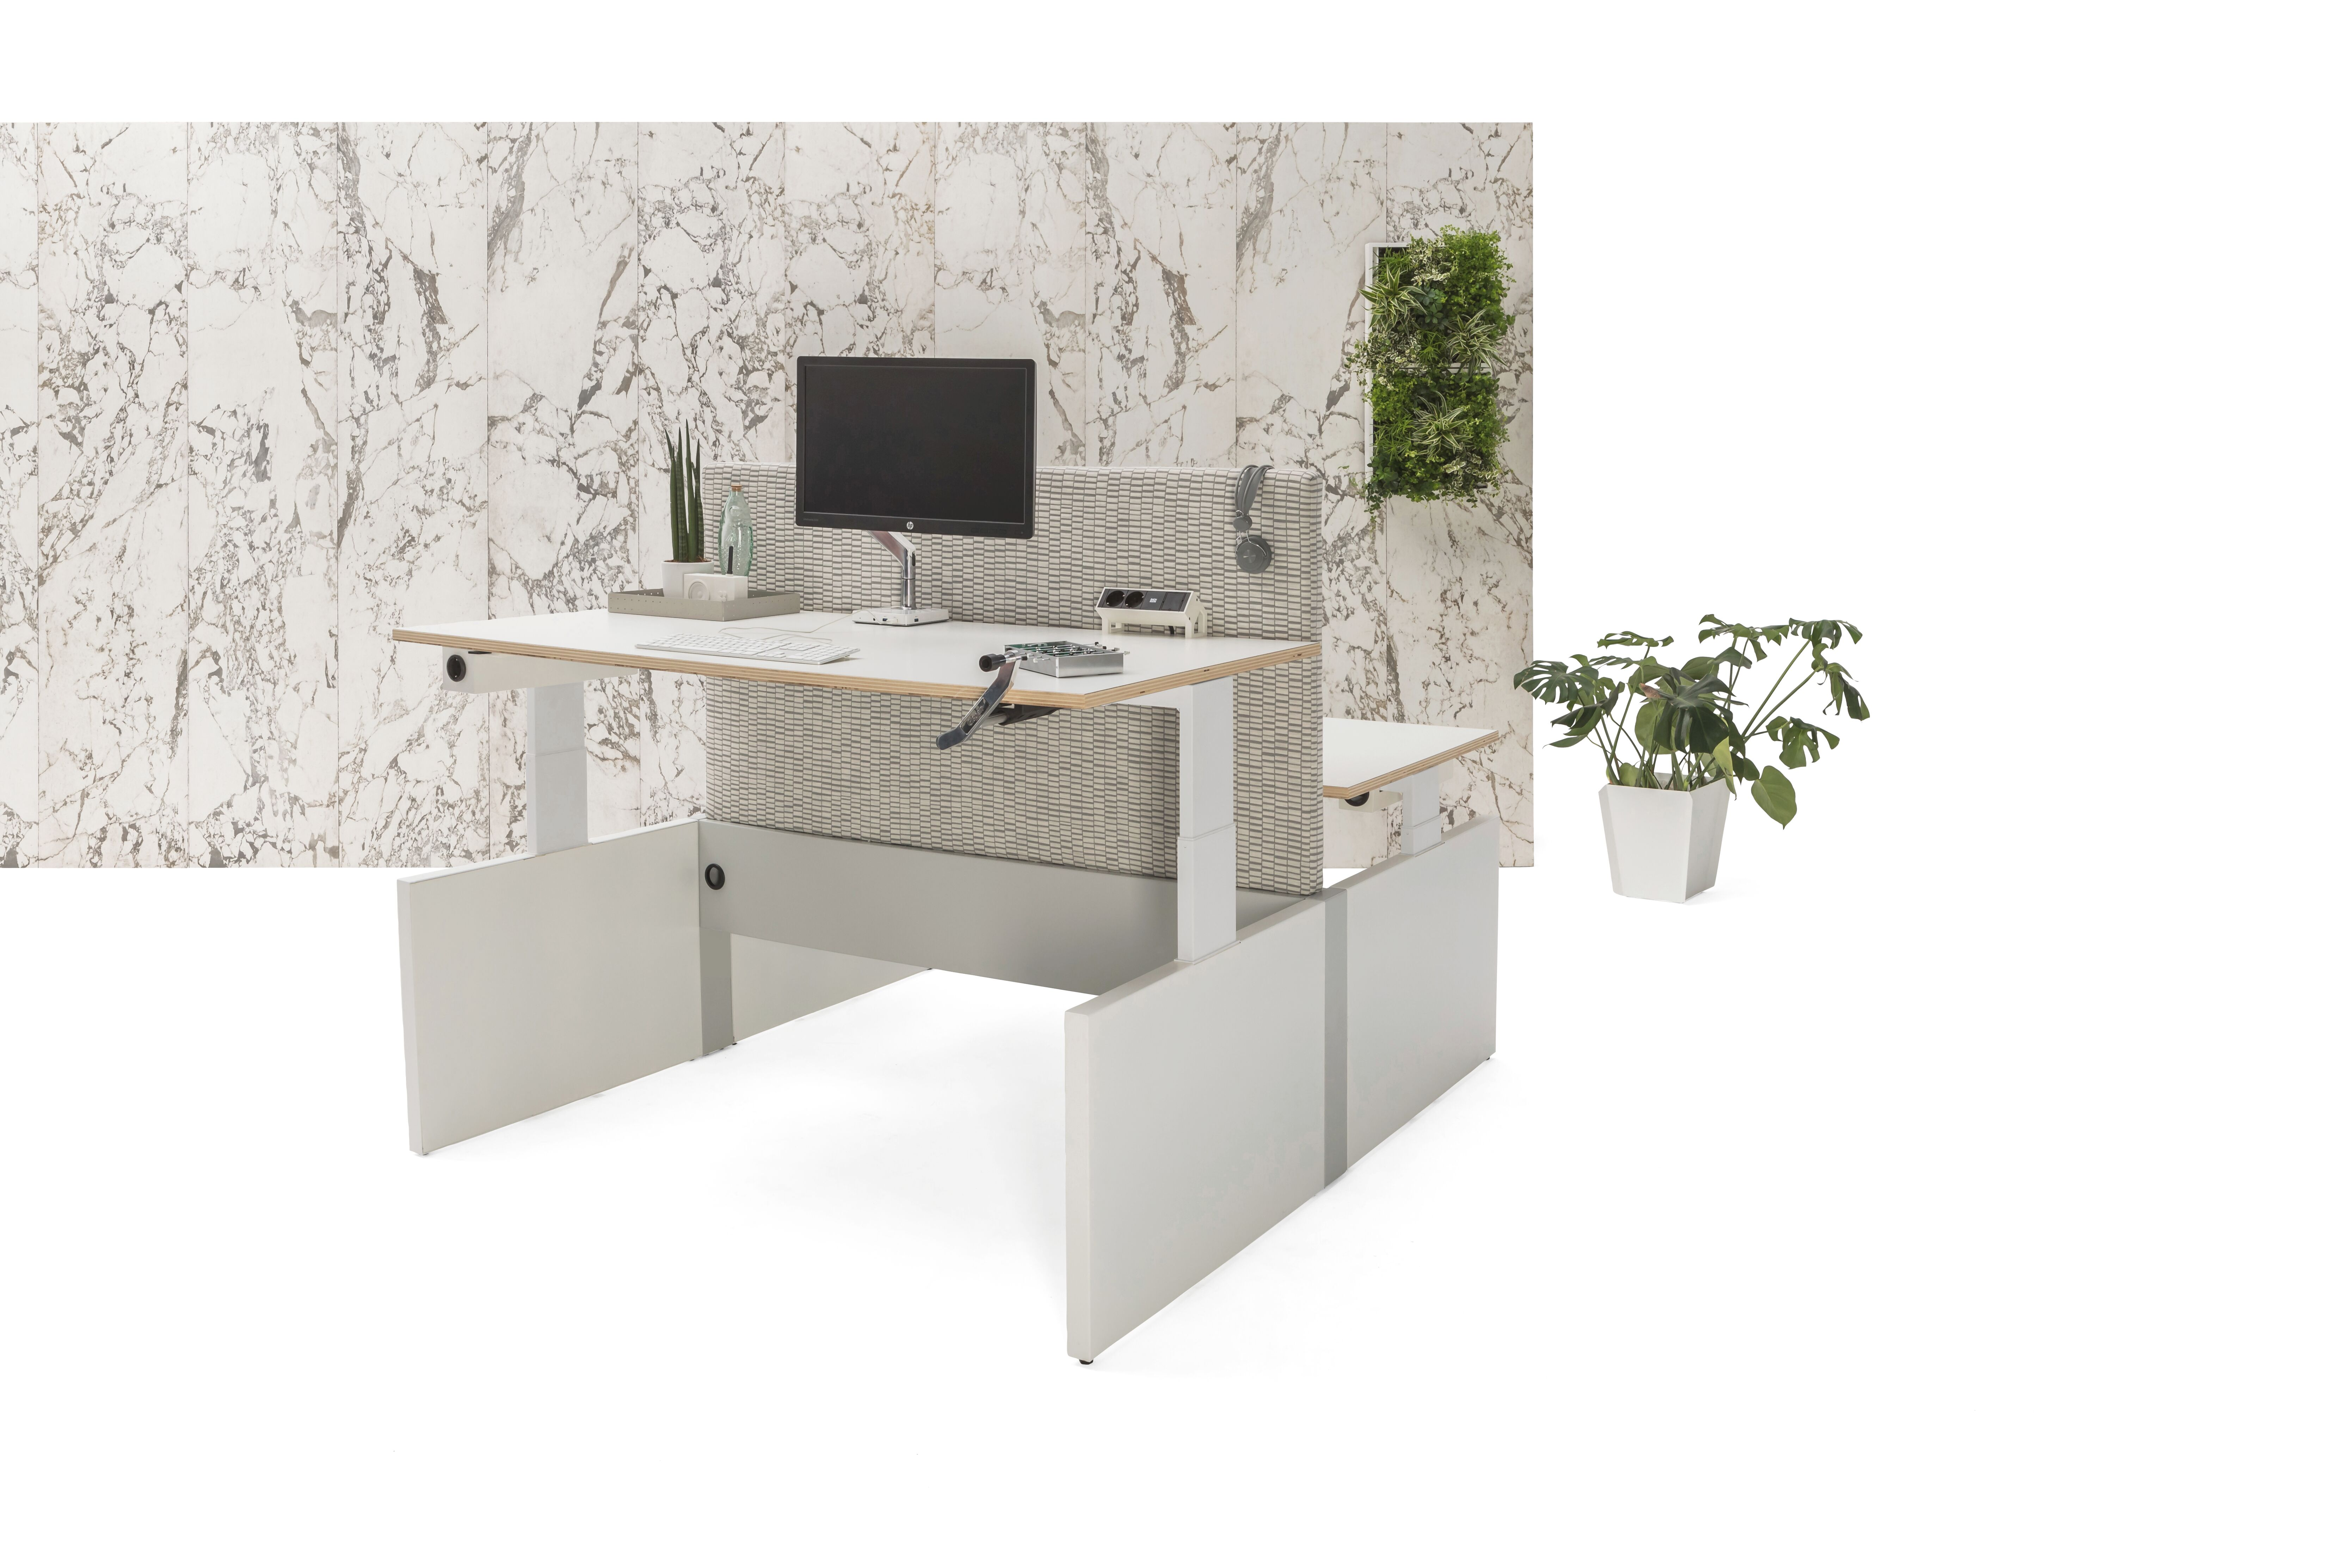 Gispen Cimo dual table with white frame and mono linkable panel legs with white chipboard tabletops and front one in position 115 and grey upholstered screen straight thick and white marble patern backpanel front right view